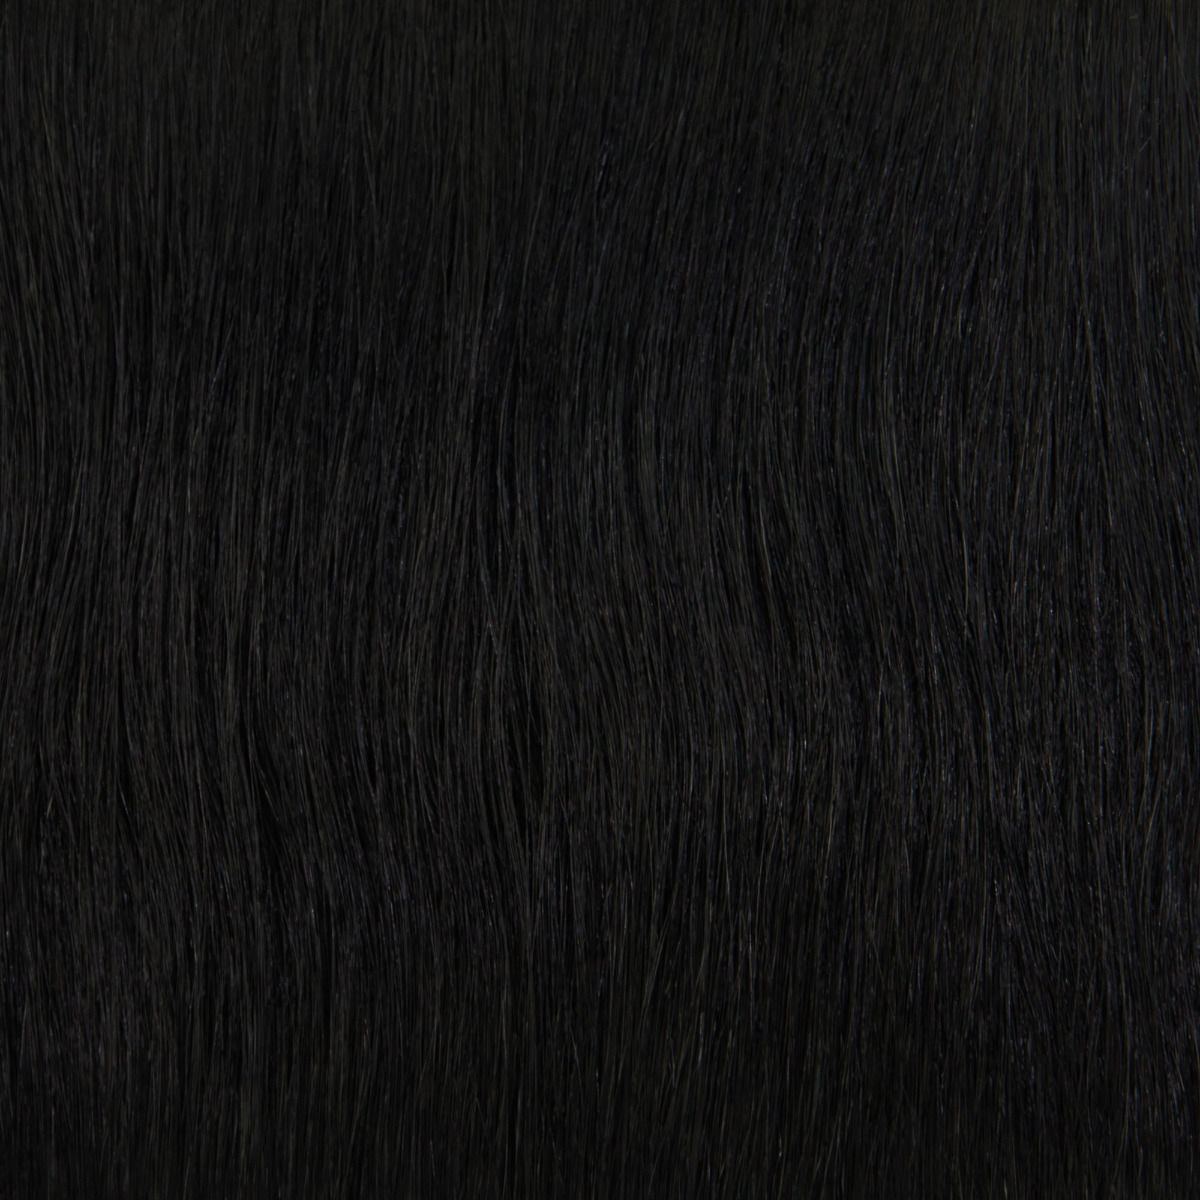 Afbeelding van Balmain Tape Extensions - natural straight - 40cm - 2 tapes - #1